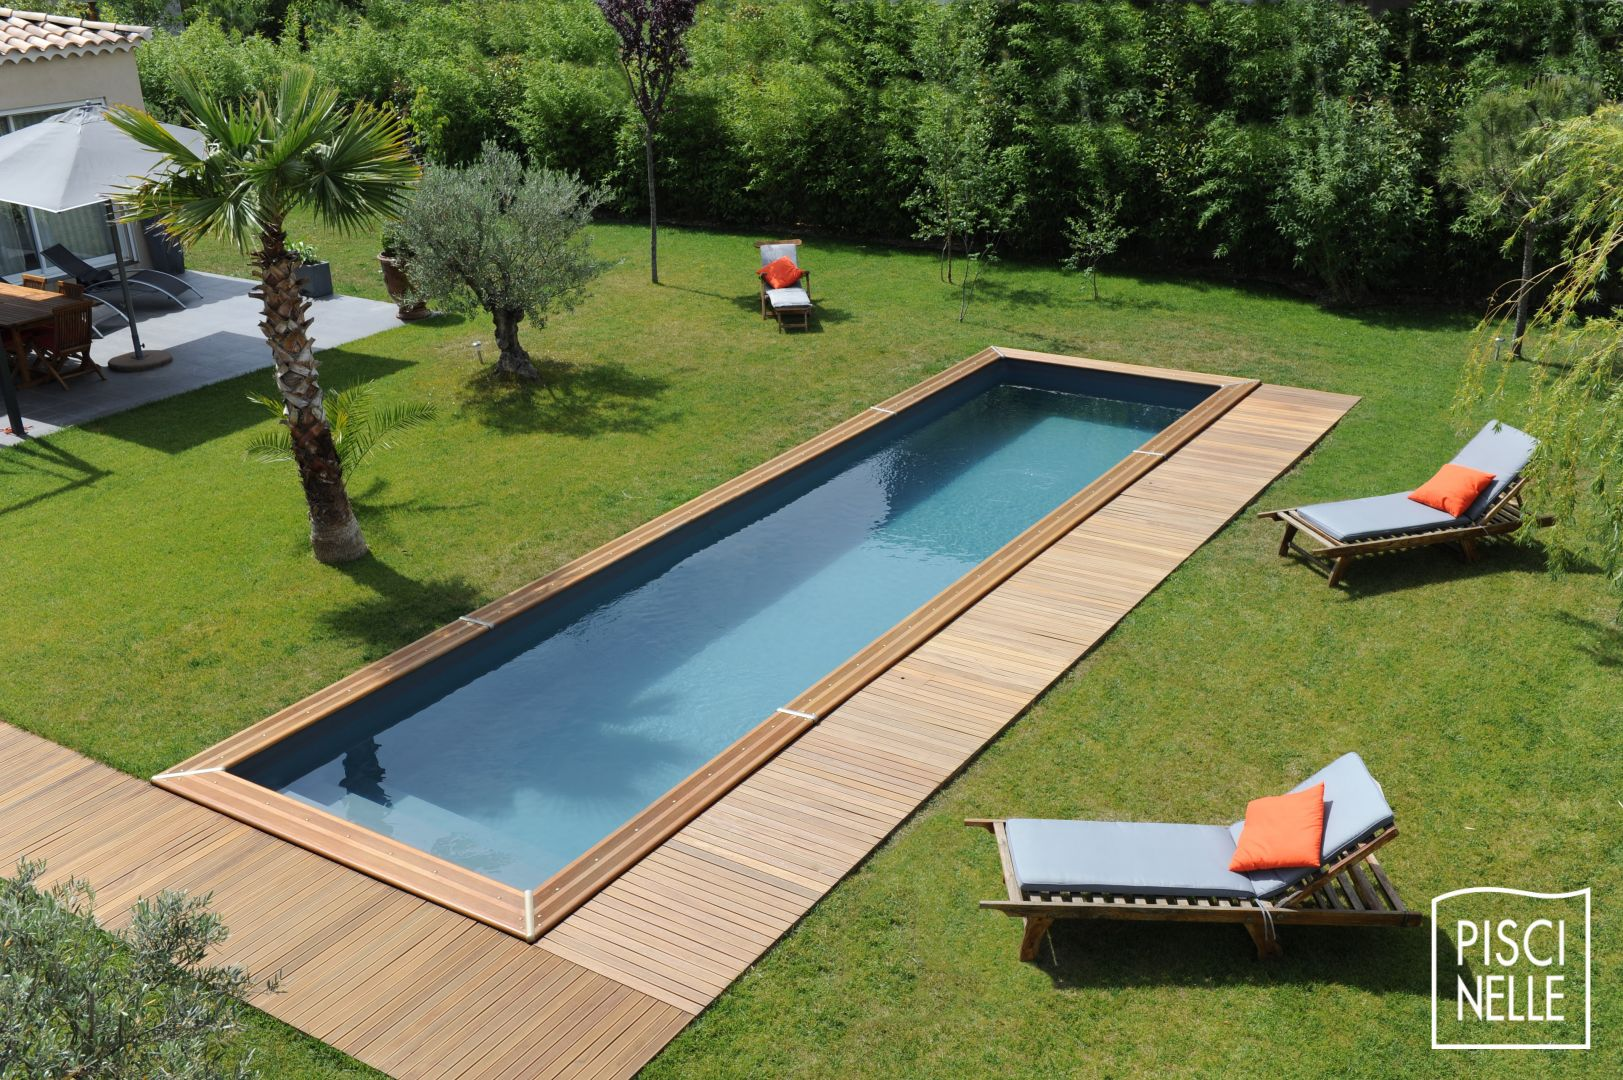 Piscine semi enterree bois prix for Prix piscine en kit